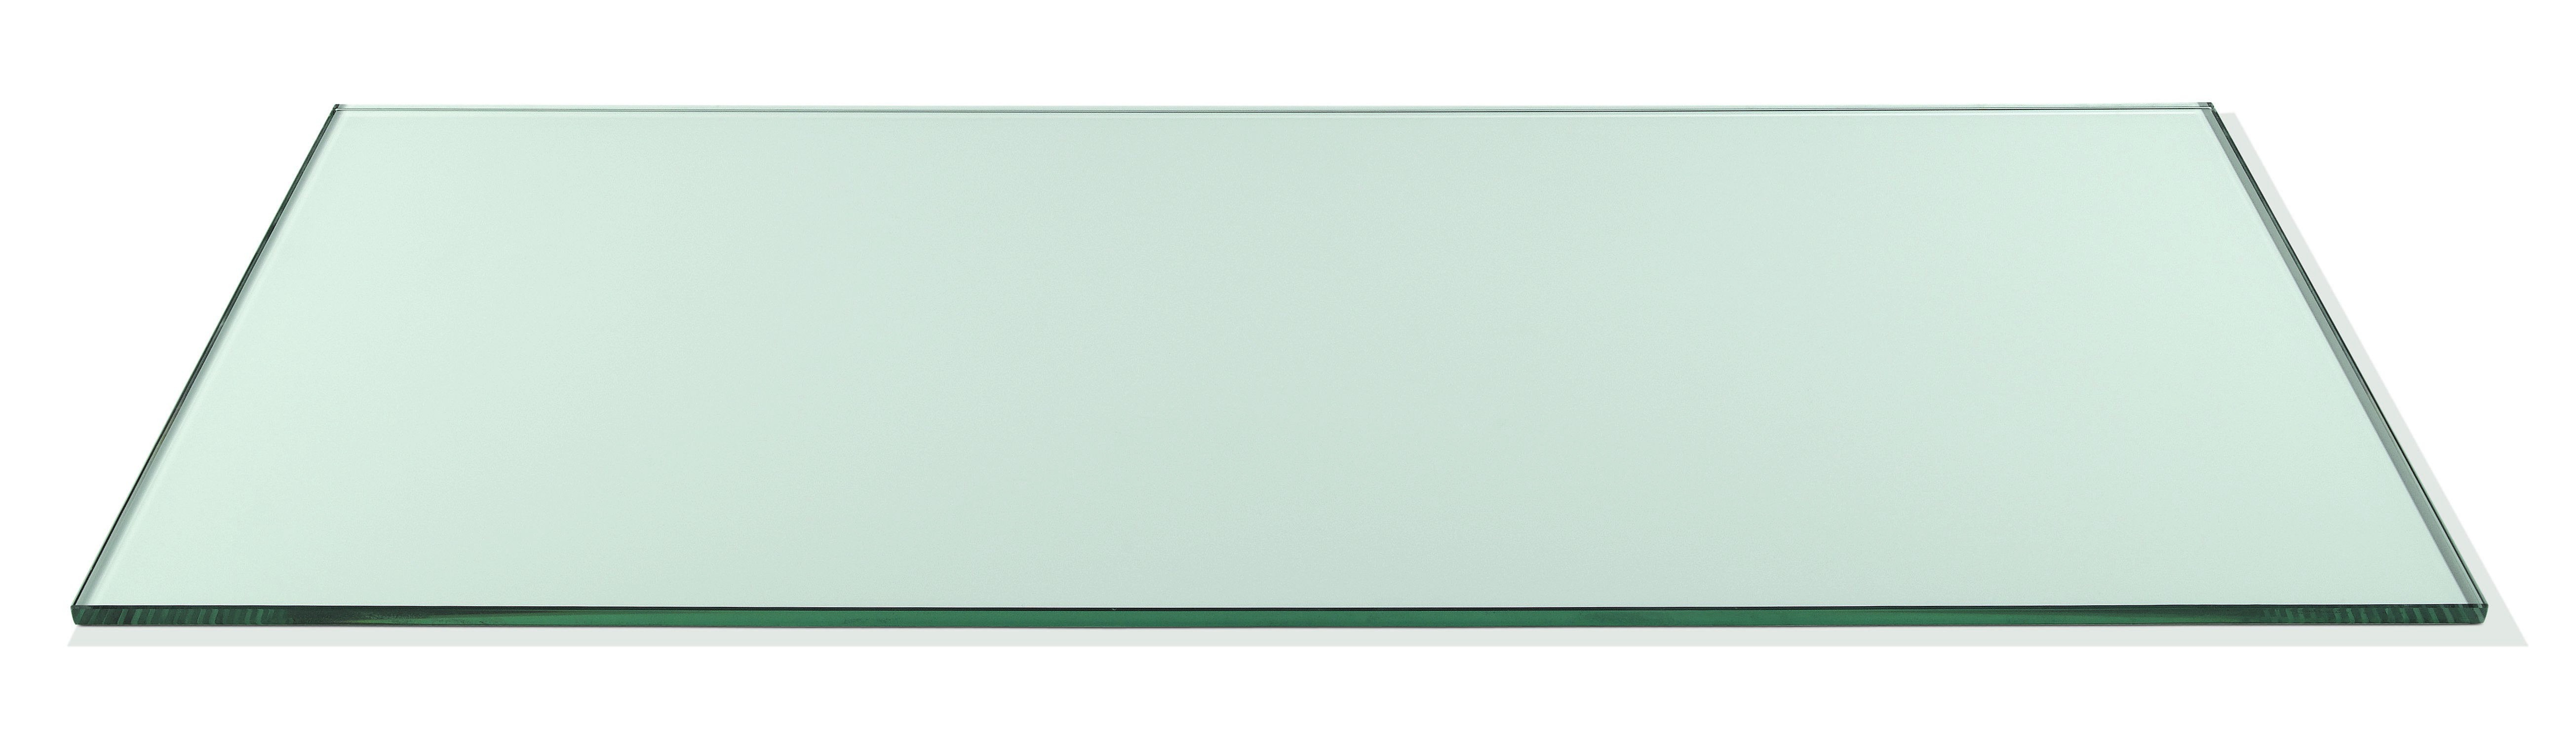 """Rosseto SG017 Wide Rectangular Clear Acrylic Surface 33.5"""" x 14"""""""